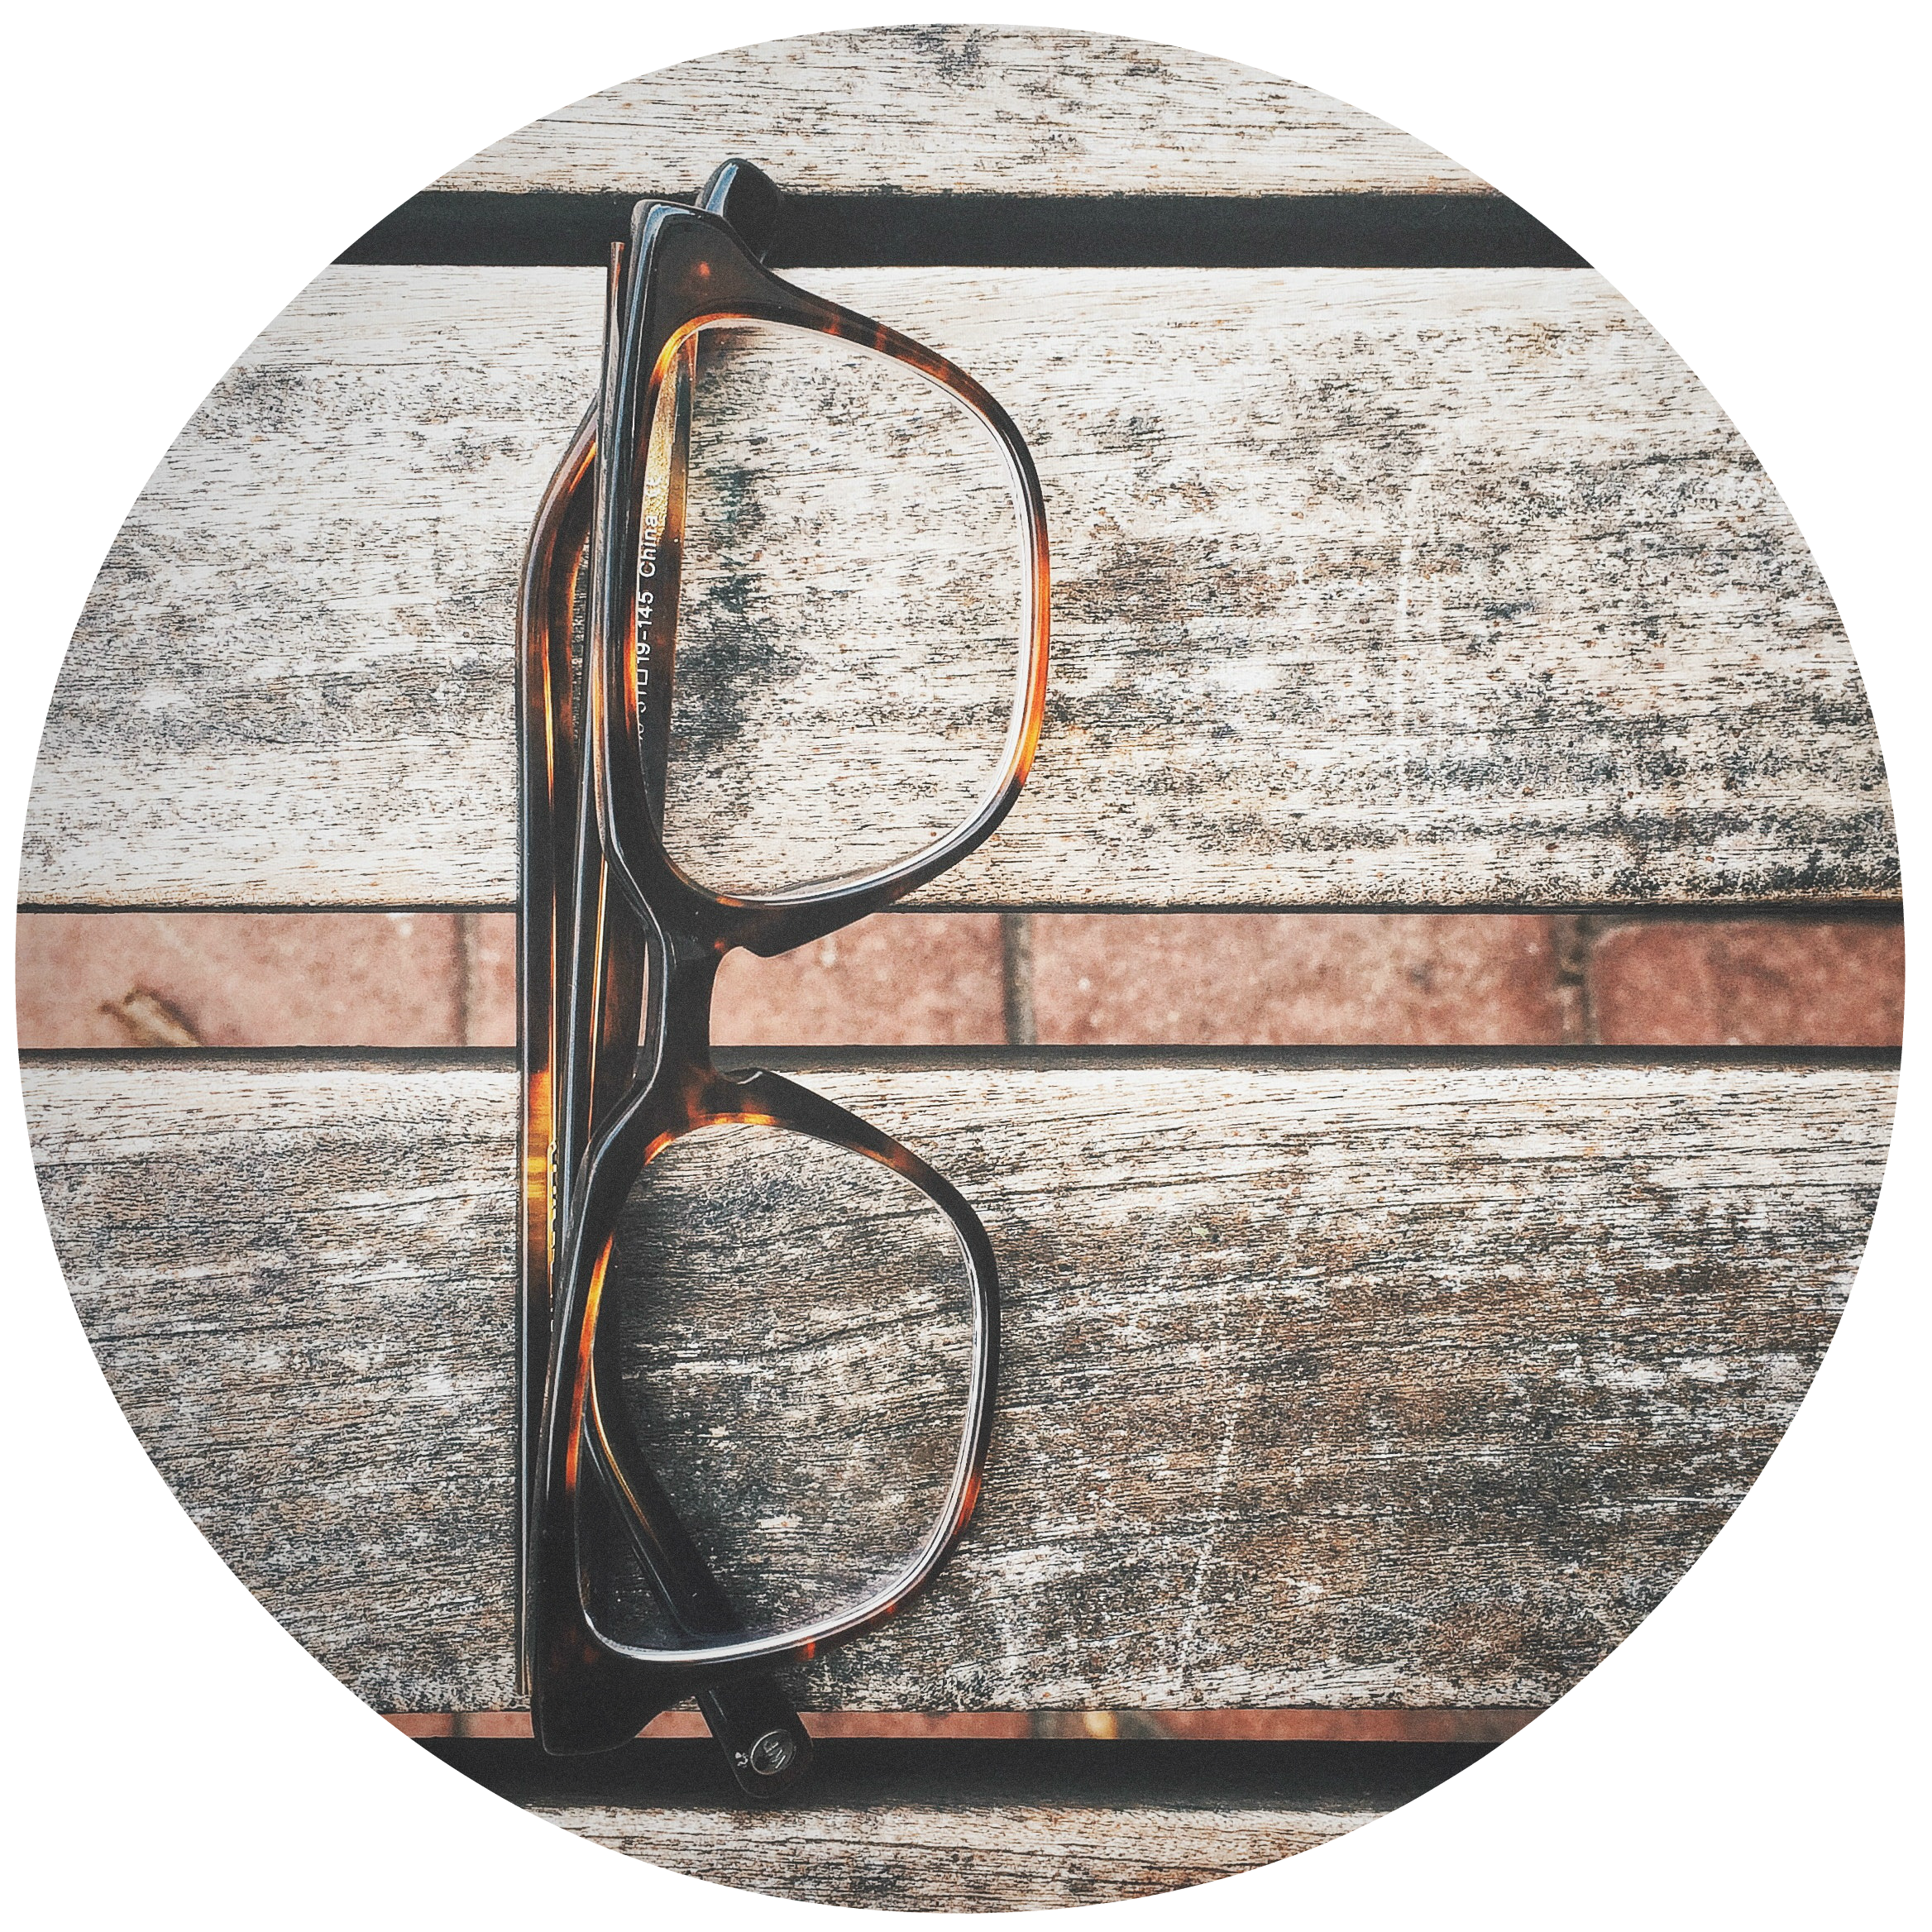 glasses-object-6749